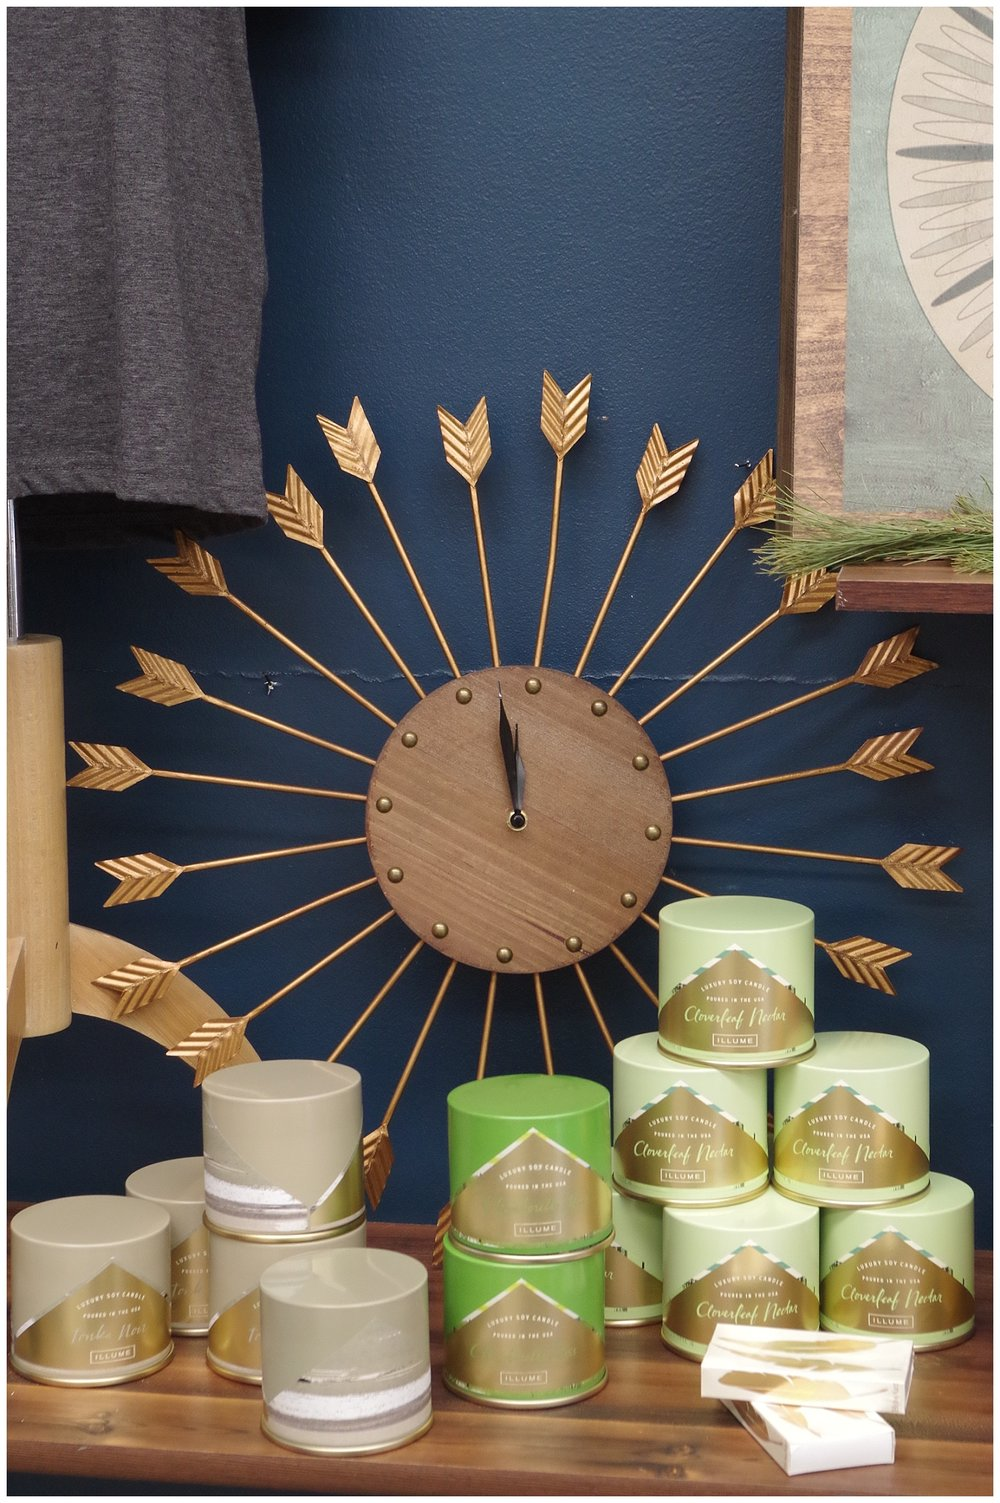 Illume soy candles and clocks galore